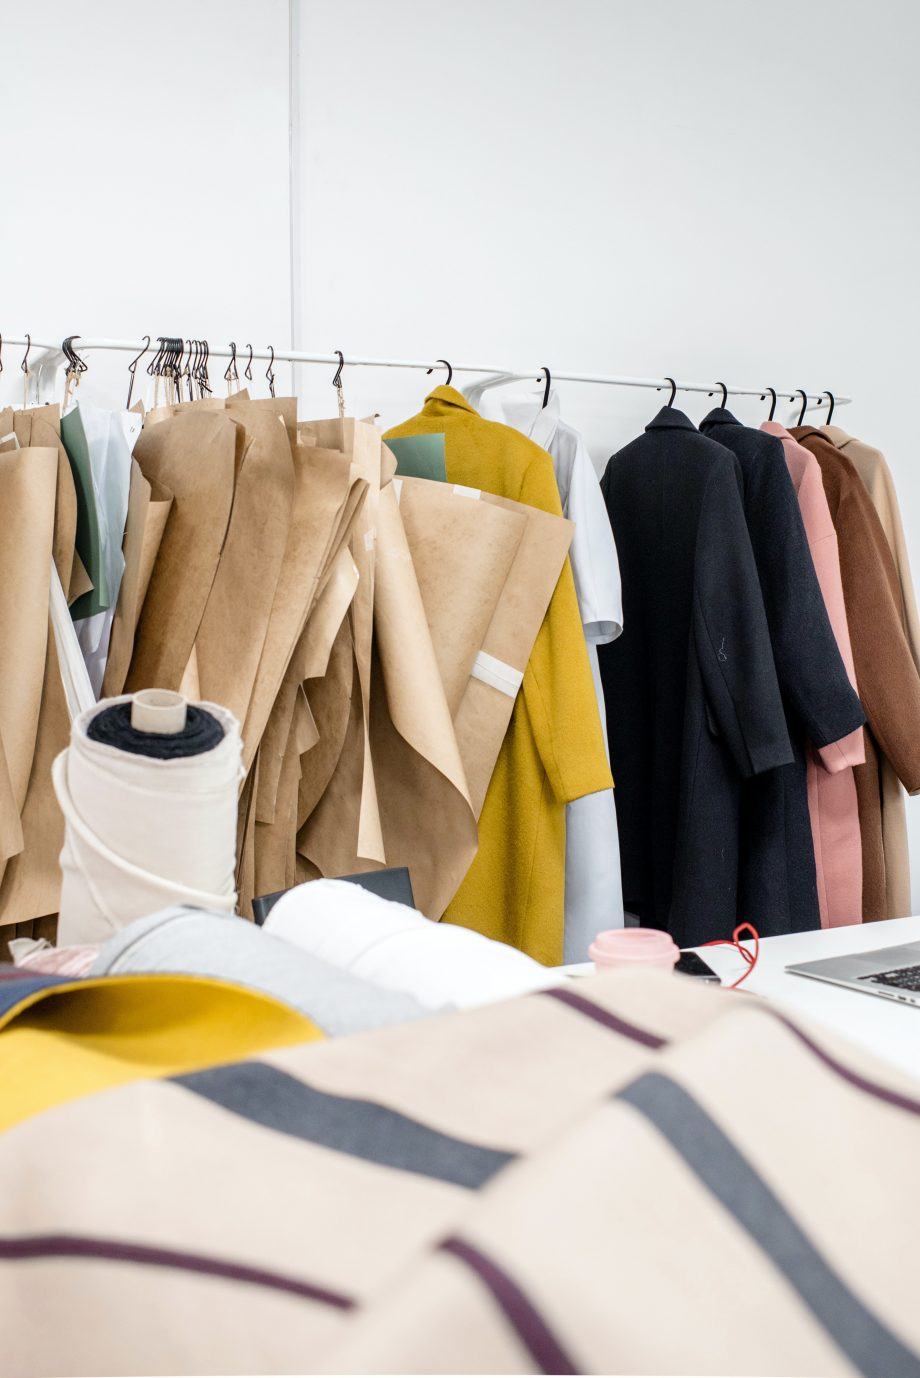 Find your fashion brand niche with 5 simple steps